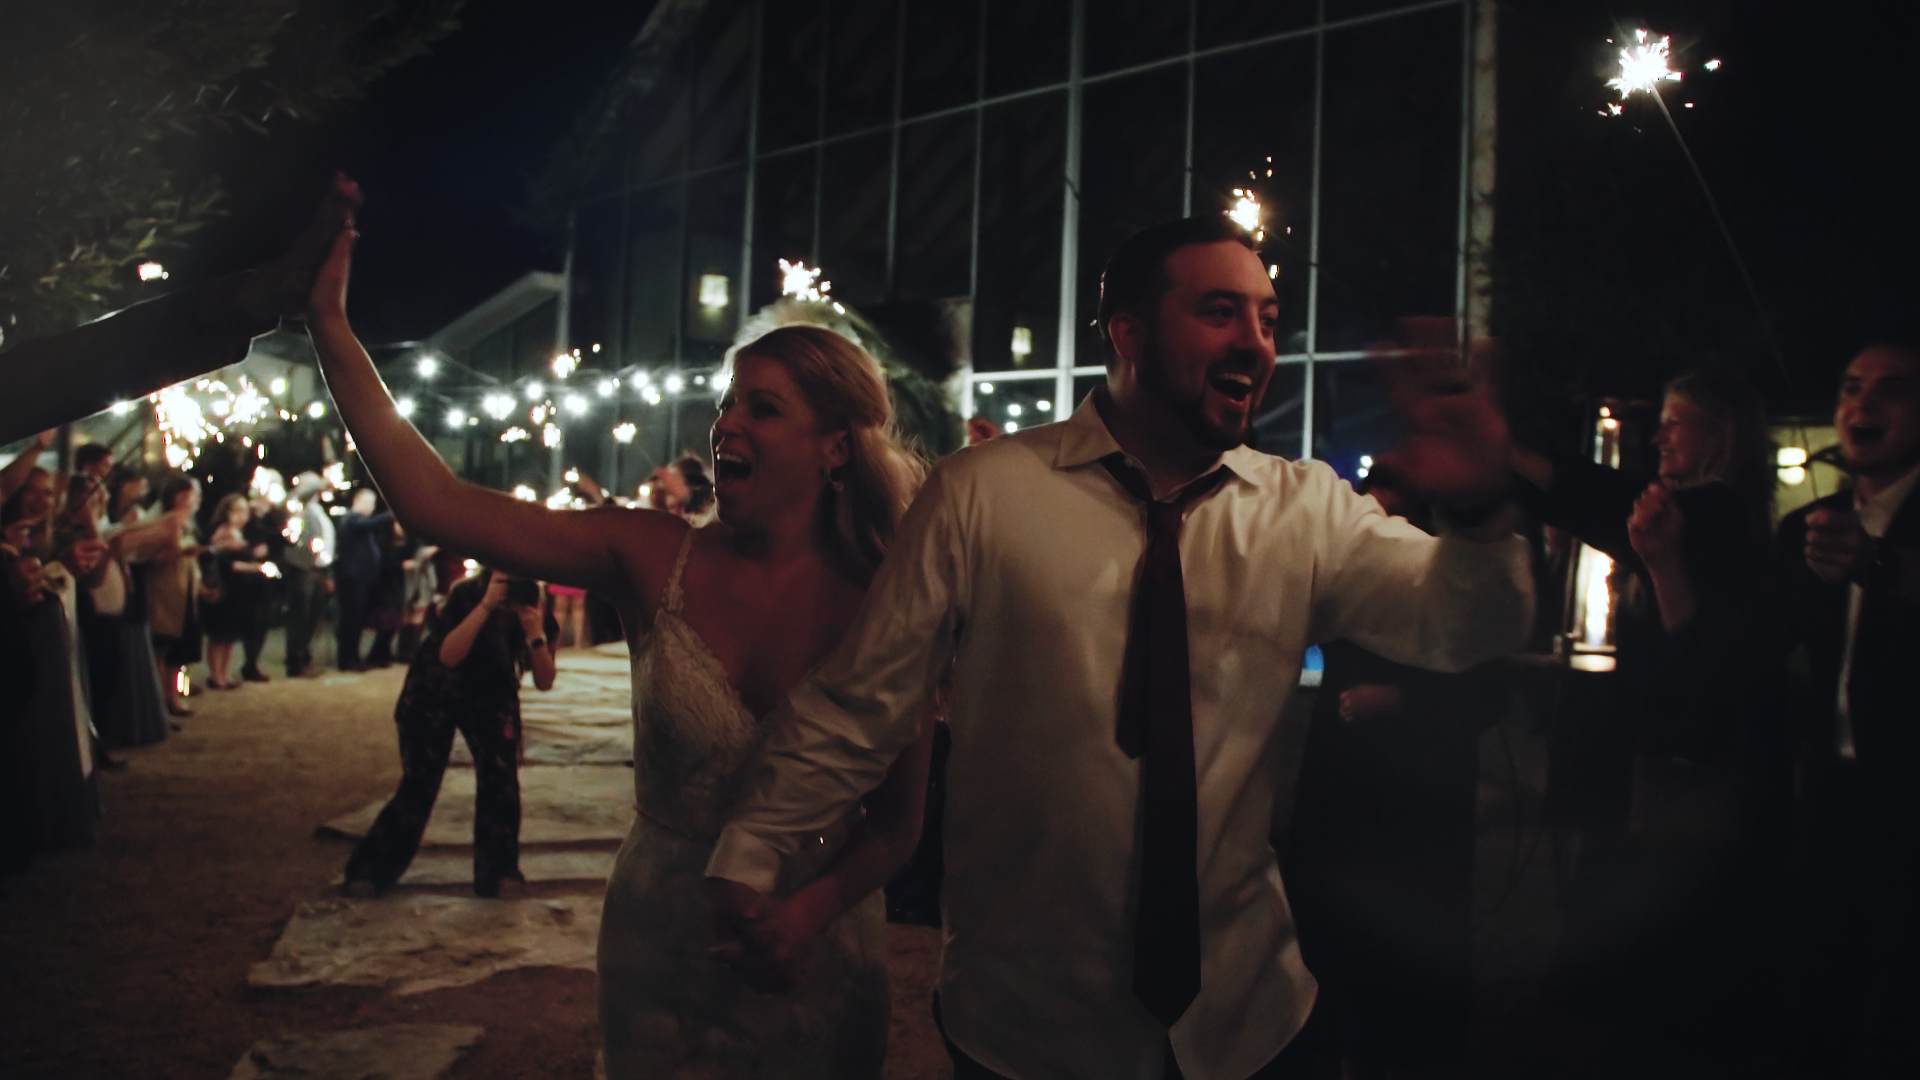 Barr_Mansion_Austin_Wedding_Videographer_New_Beginnings_Films_58.png